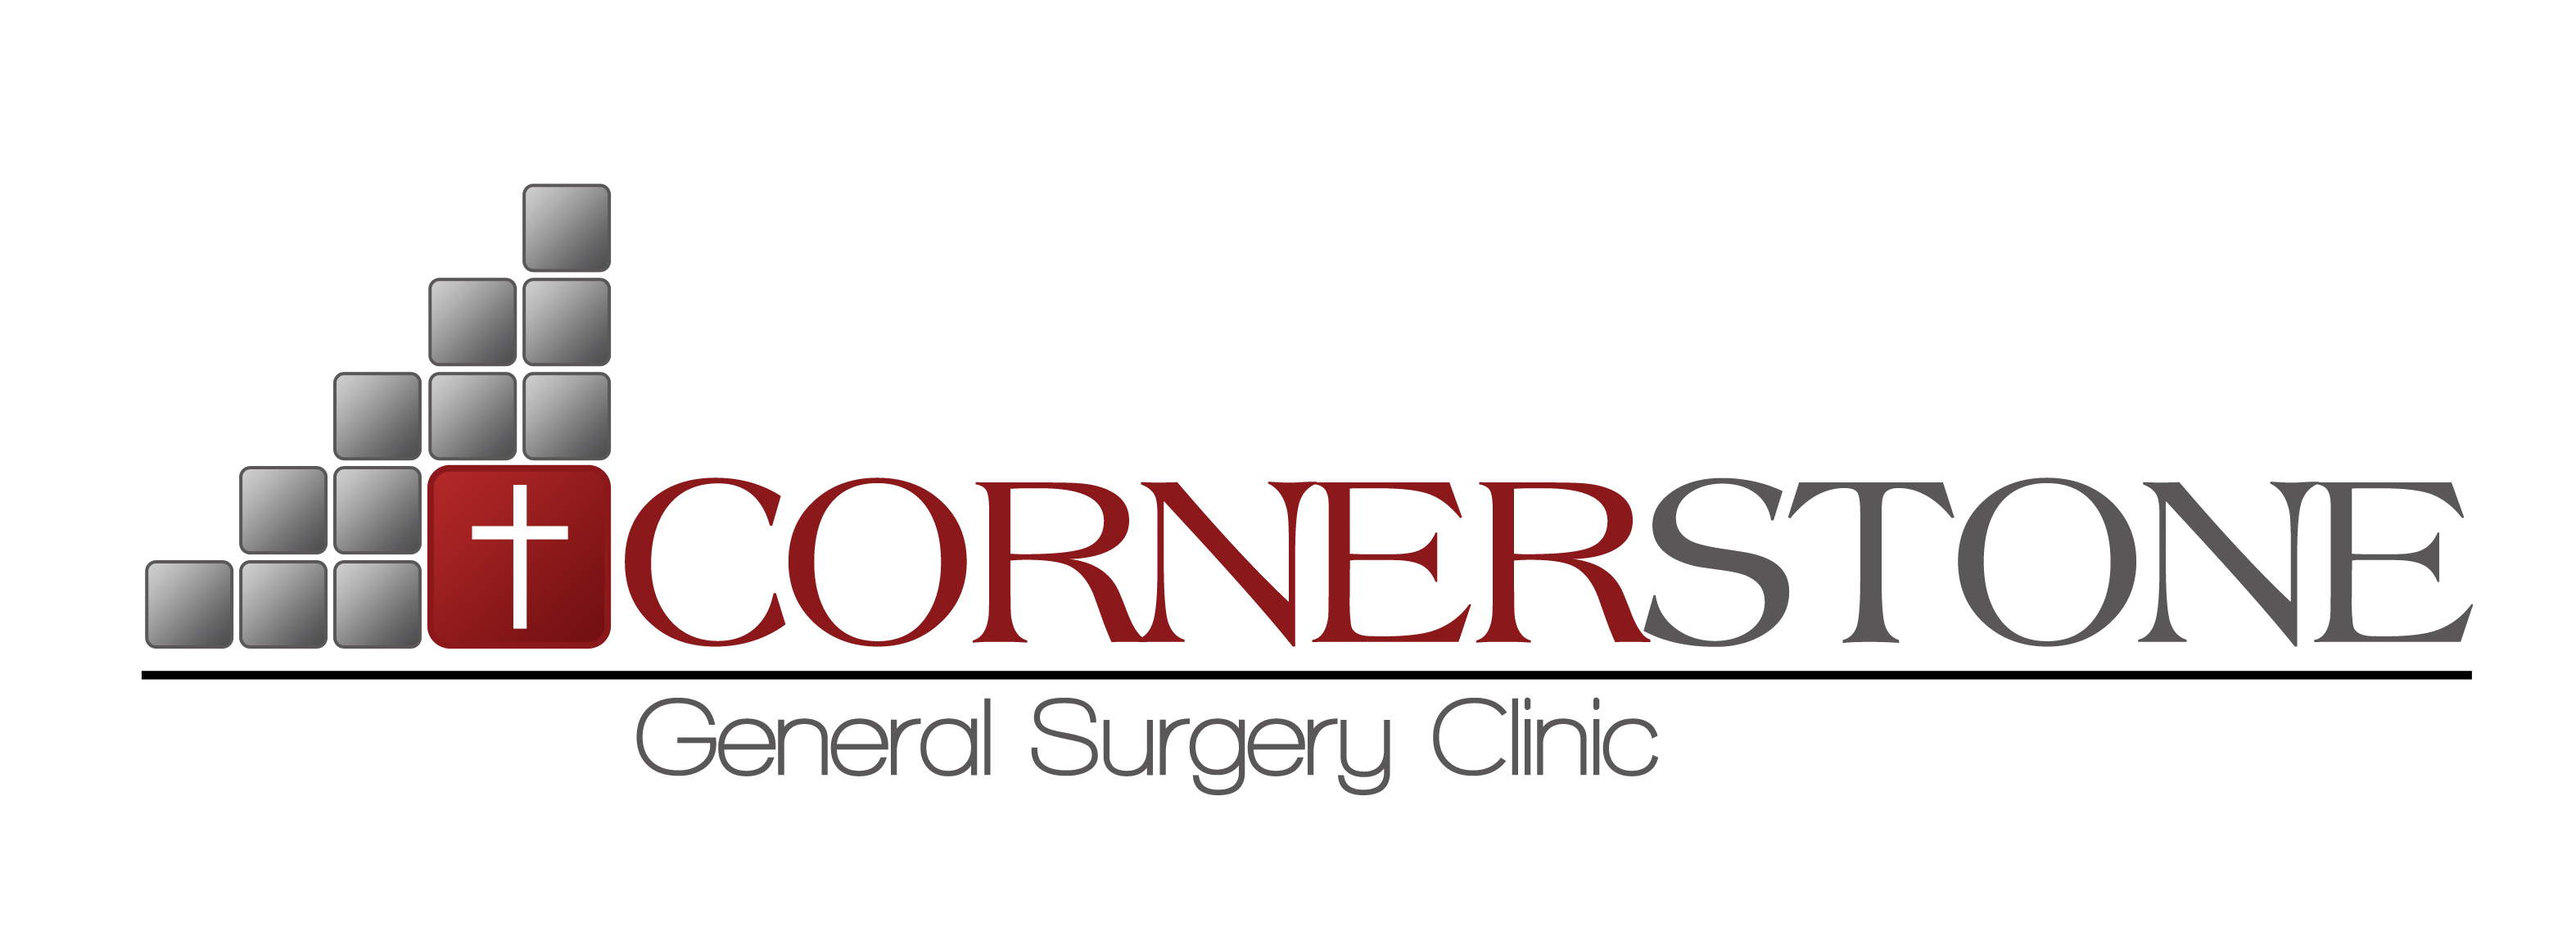 Dr. Monk | Cornerstone General Surgery Clinic